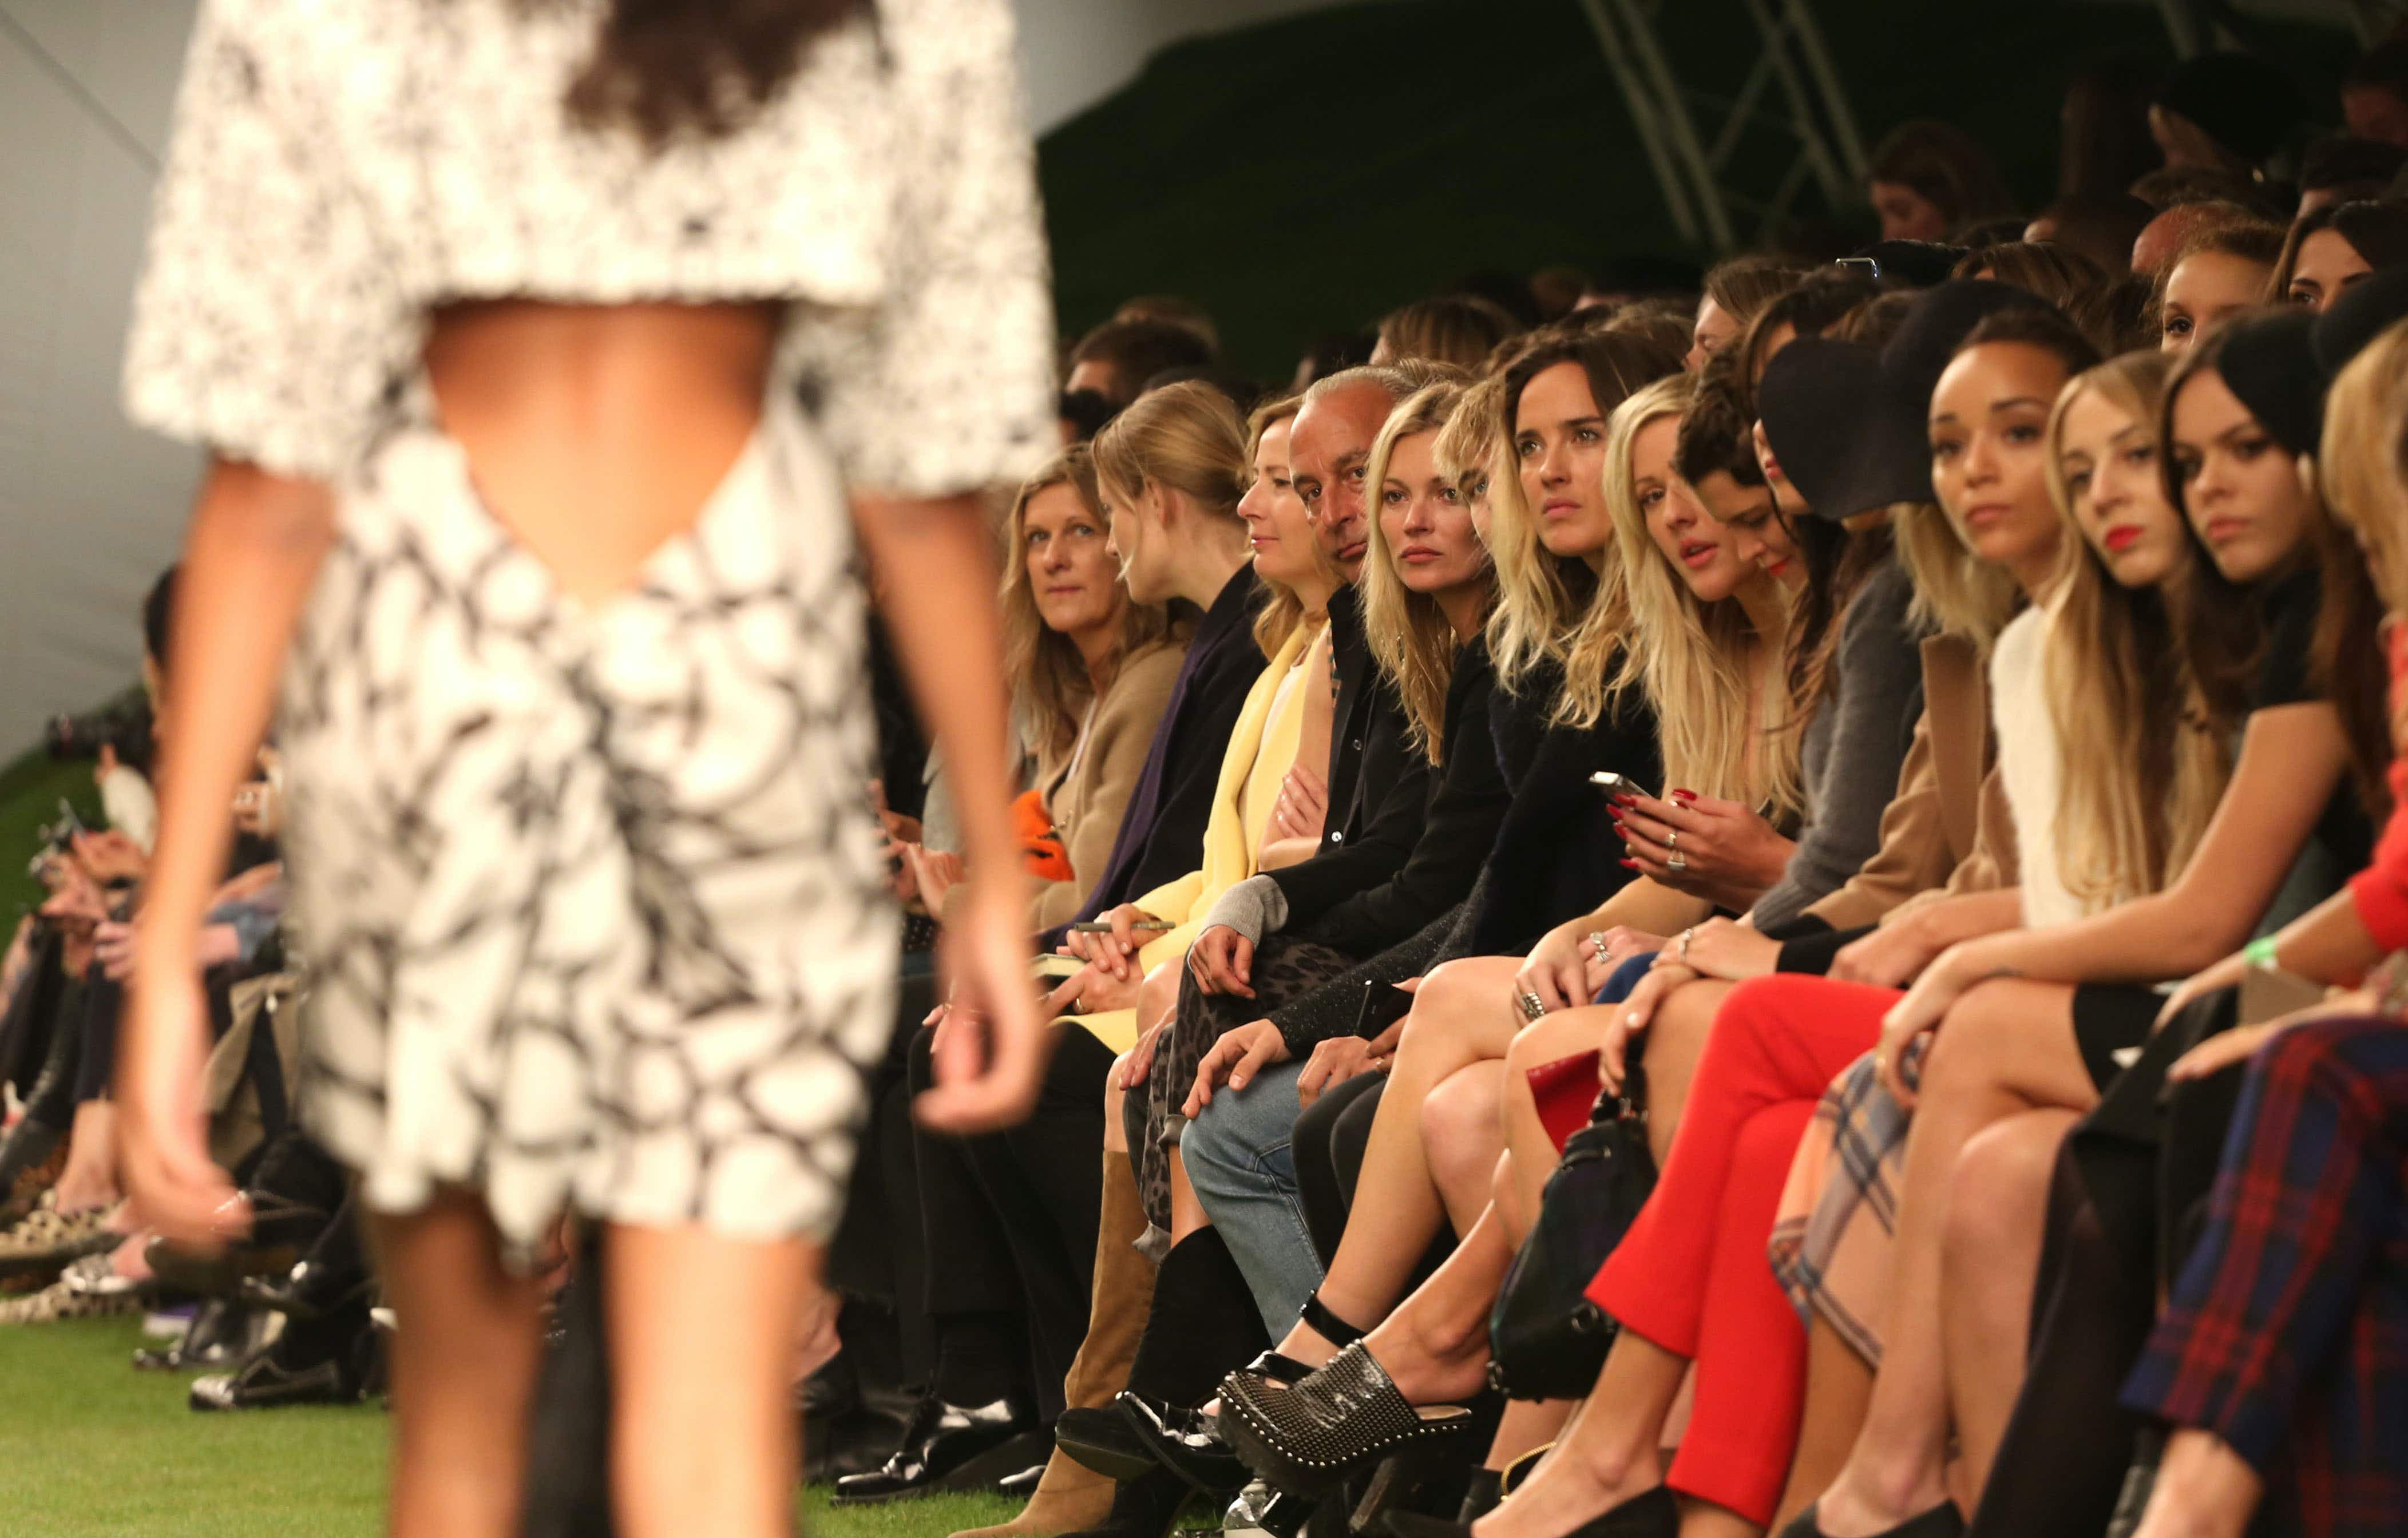 London Fashion Week attracts some of the biggest names in the industry © Featureflash Photo Agency